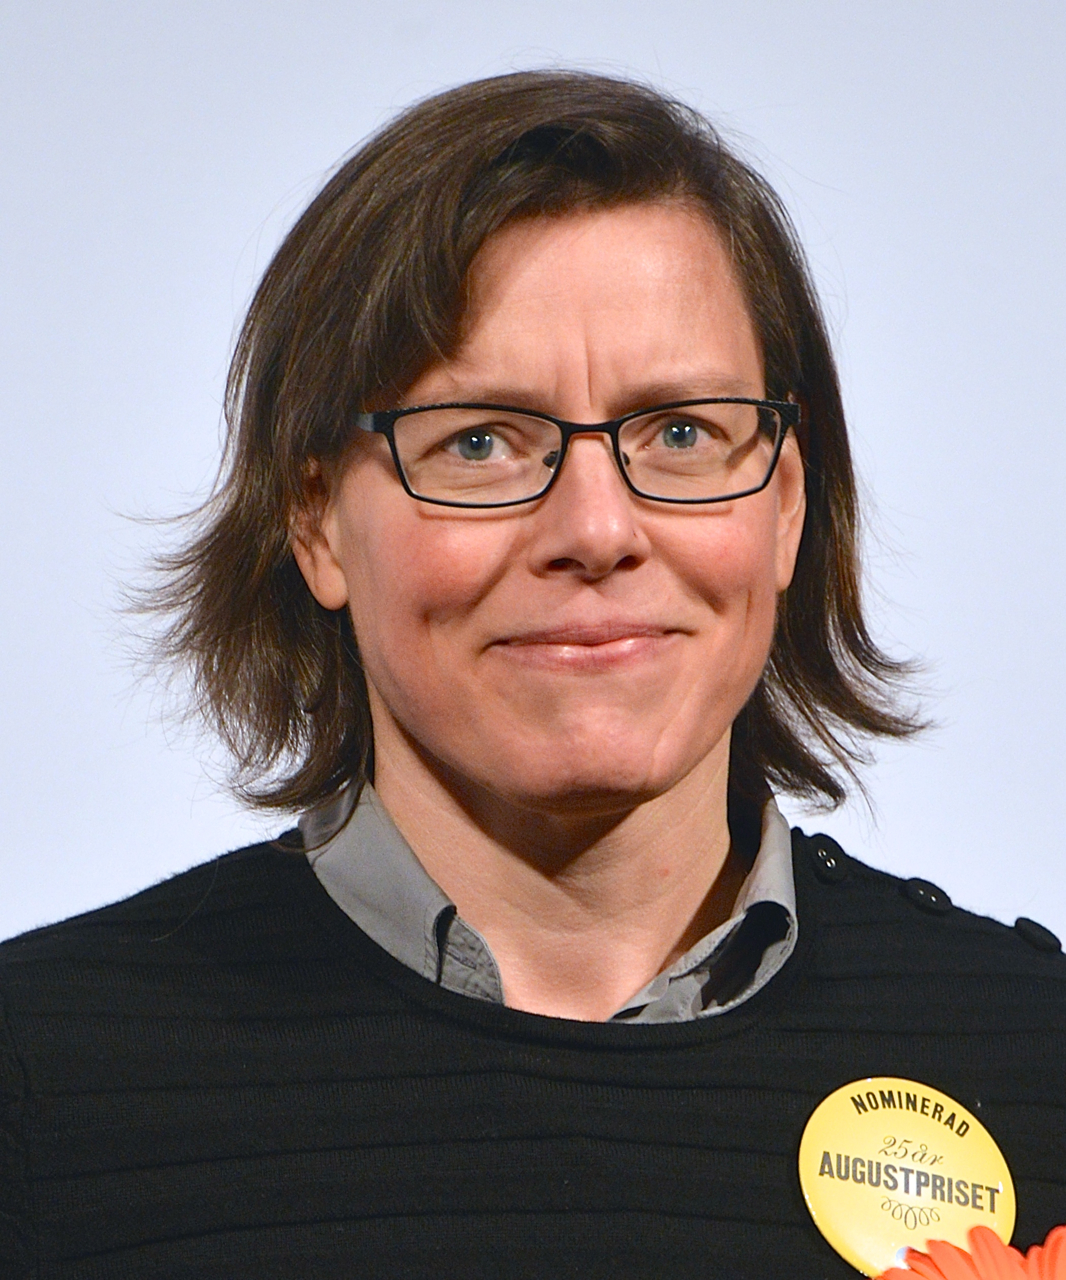 Filelena Andersson In October  Jpg